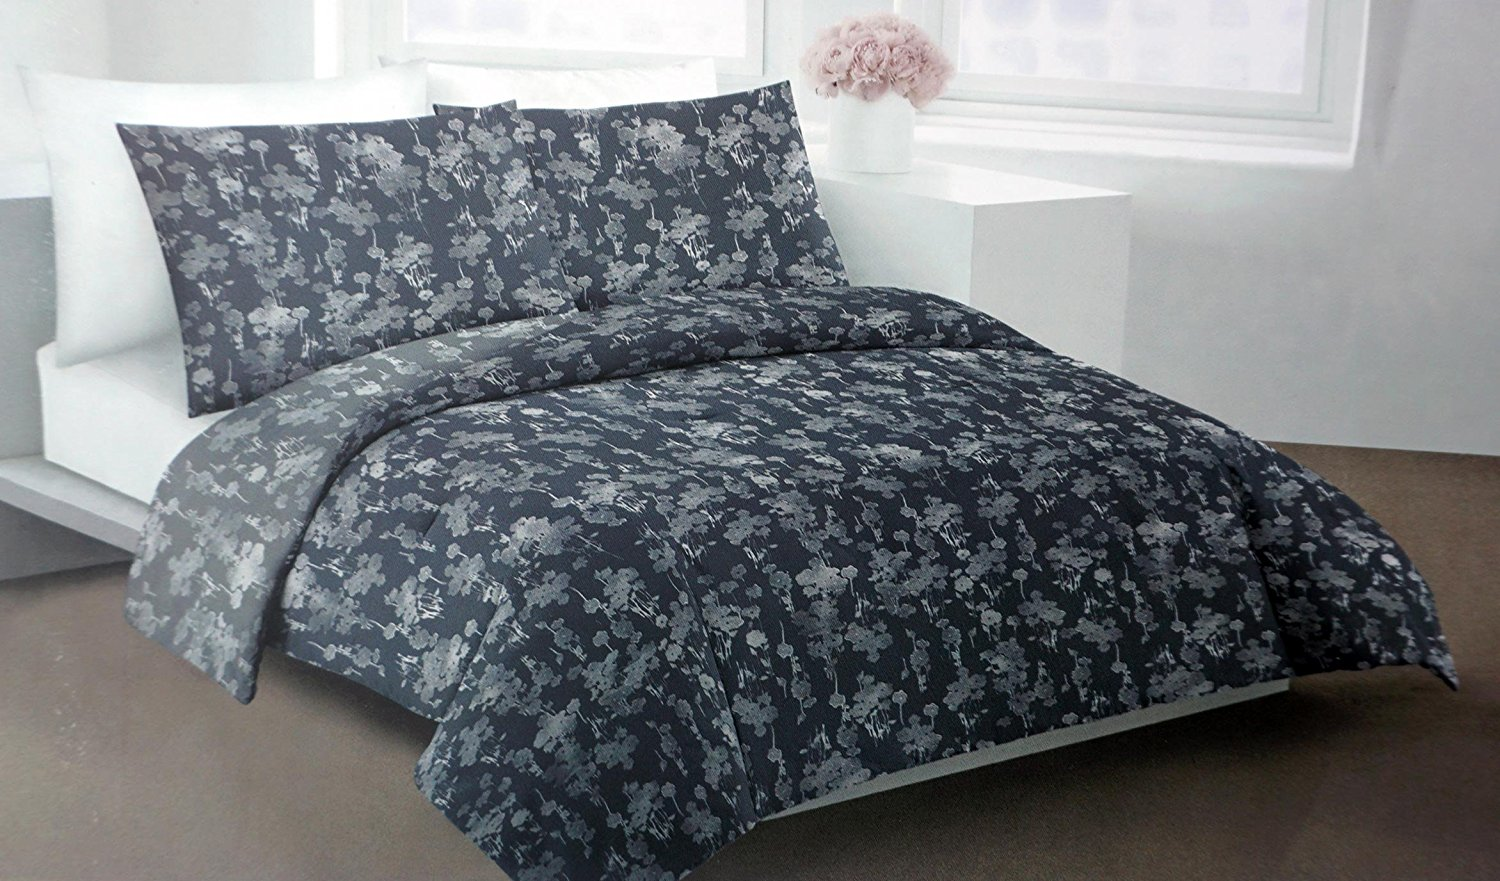 Buy Duvet Cover Dkny Bedding 3 Piece King Duvet Cover Set Floral Pattern In Shades Of Light And Dark Gray Silhouette Floral